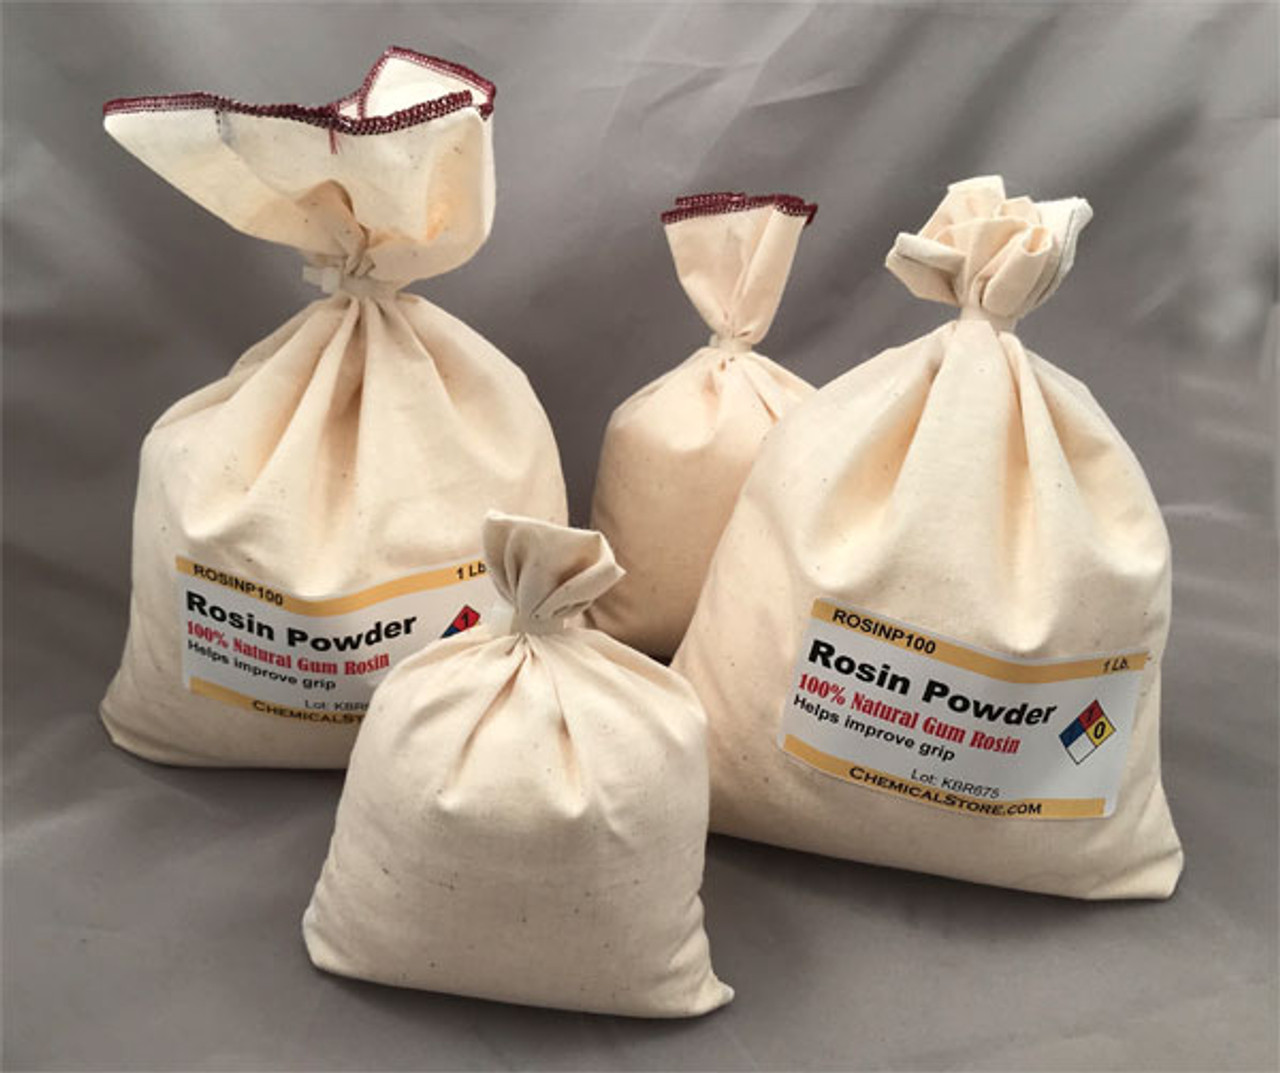 Rosin Powder is also available in cotton bags for special orders.